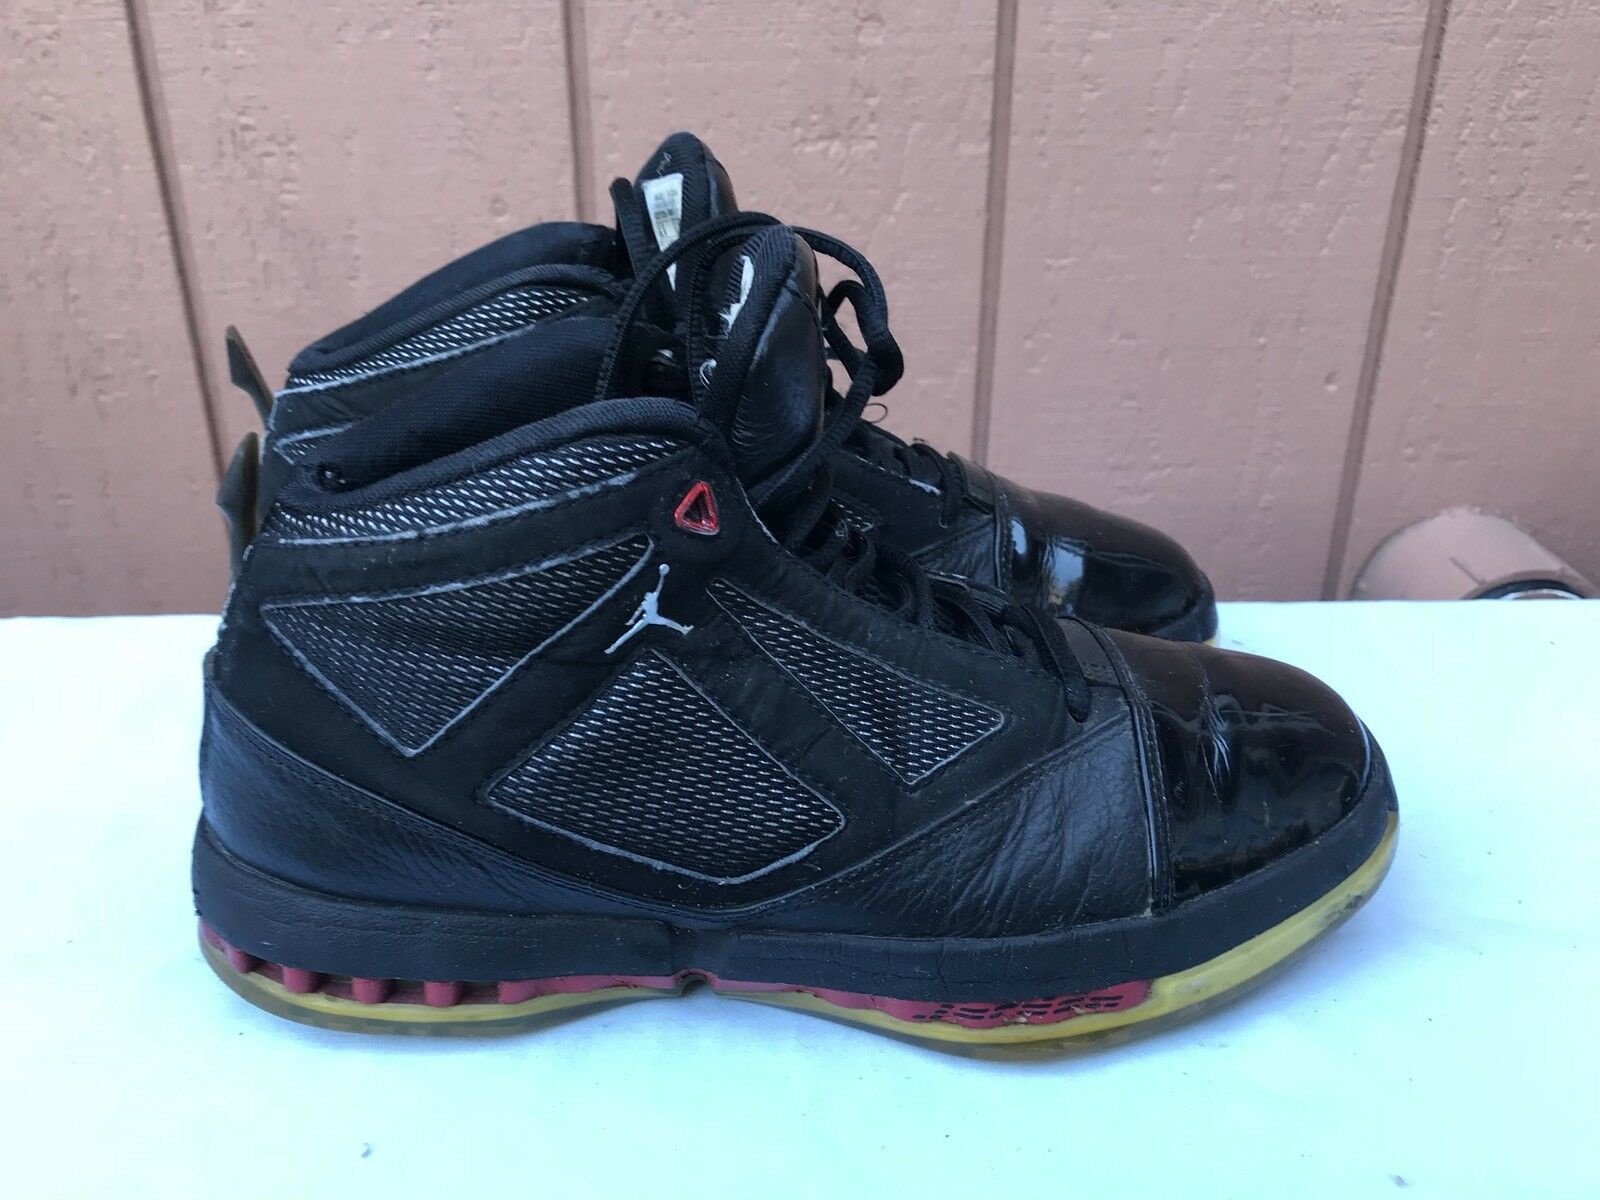 2008 Nike Air Jordan XVI 16 Retro 8.5 CDP COUNTDOWN BRED BLACK RED 322723-061 A2